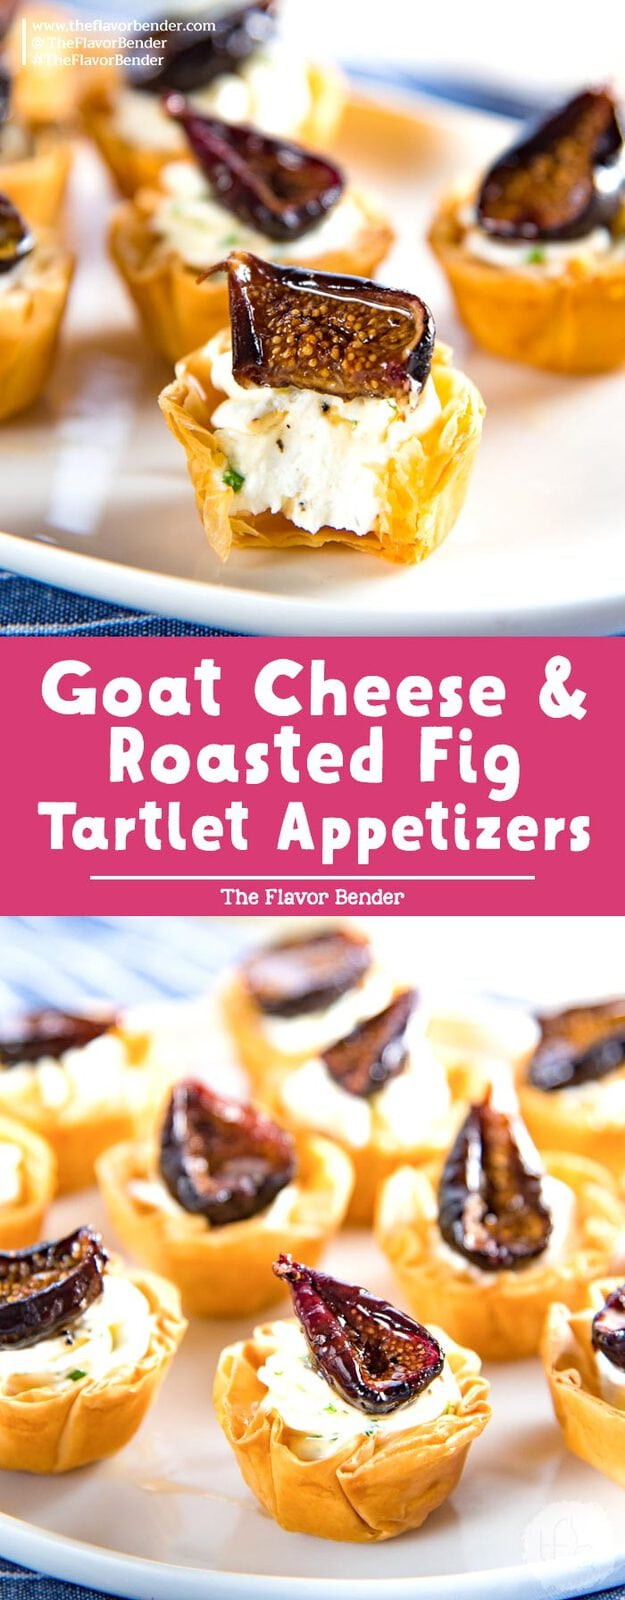 Goat Cheese and Roasted Fig Tartlet Appetizers that are sweet, savory, creamy and crunchy all in one bite. These appetizers can be made a few days ahead of time, and the recipe is also very adaptable. #HolidayAppetizers #PhylloCupAppetizers #FigTartlet #FigRecipes